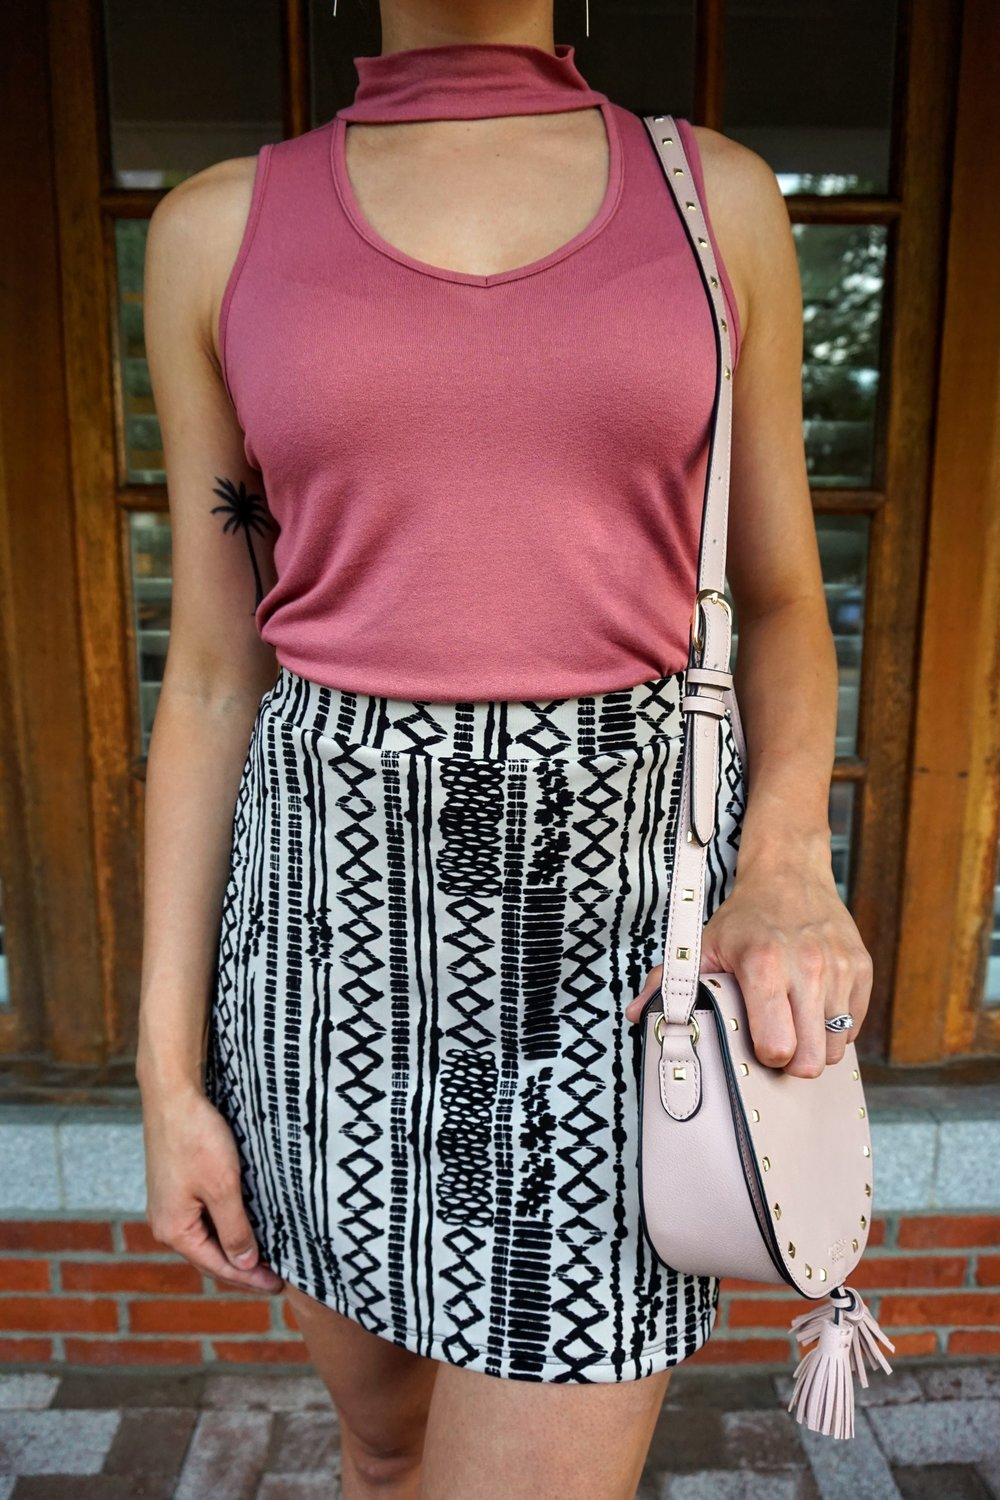 Details of a blogger's outfit: a nude and black patterned skirt, pink choker top tucked into the skirt, and a pink crossover bag.